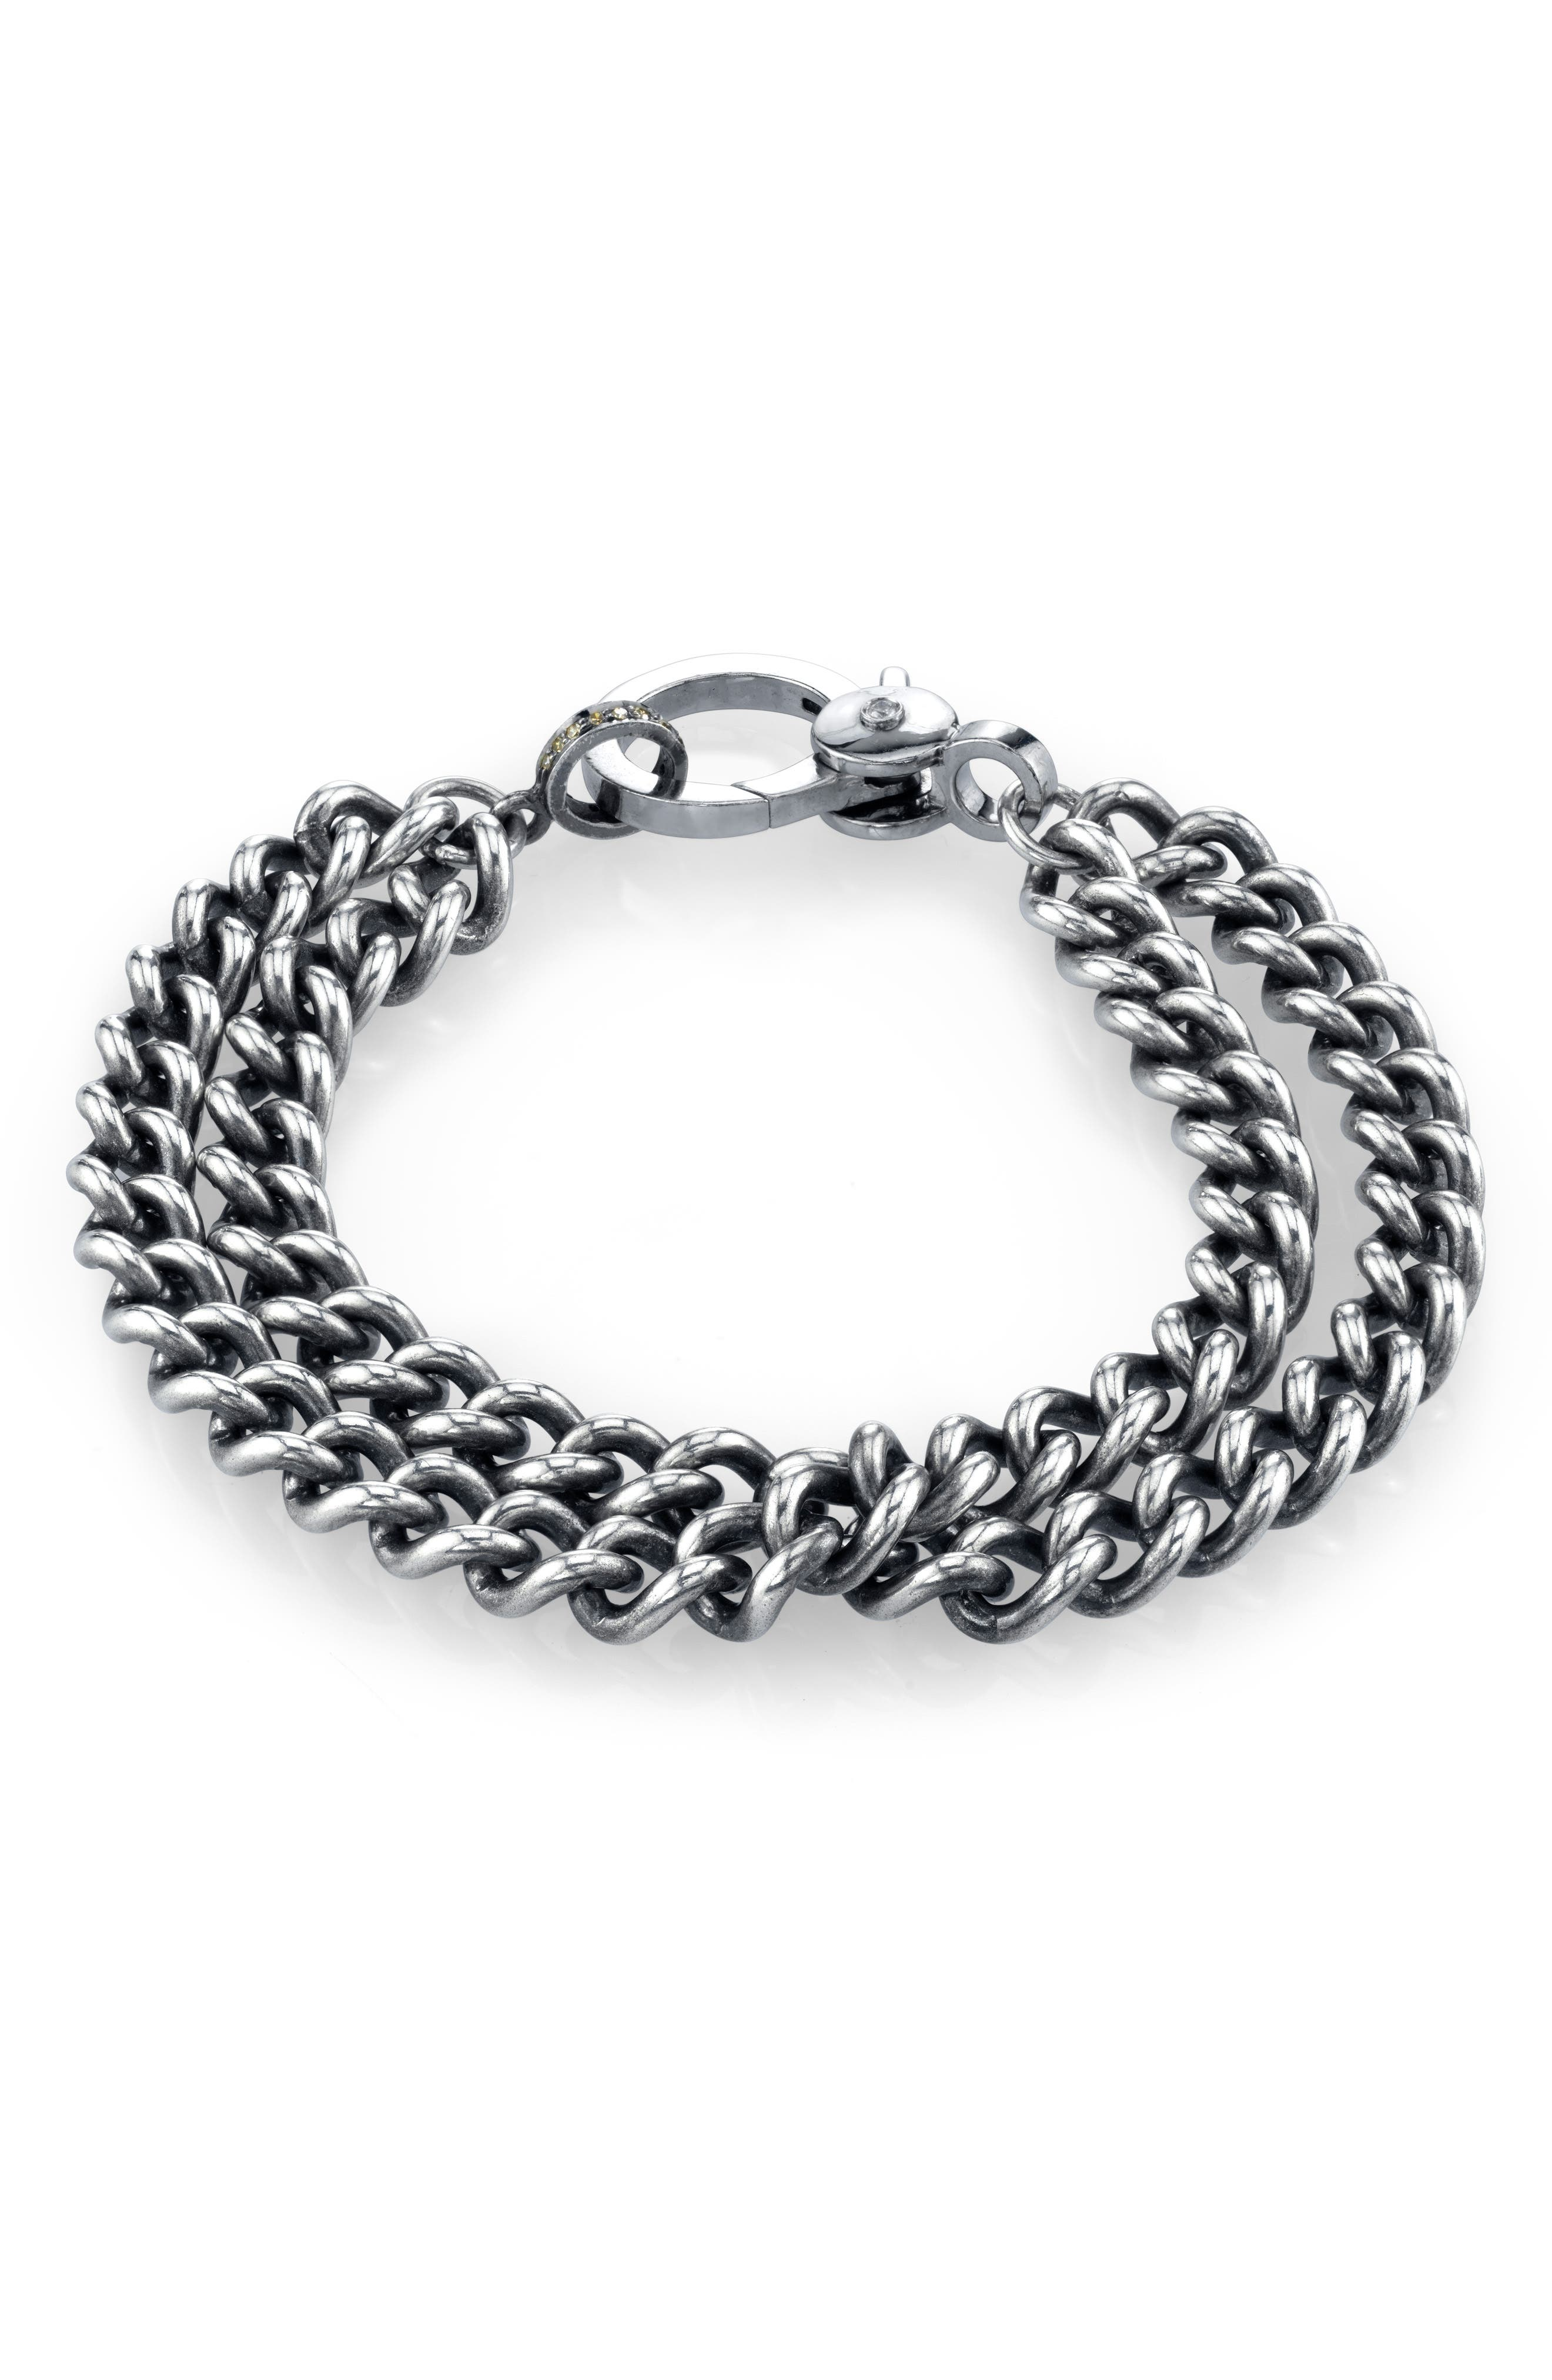 Double Curb Chain Bracelet in Sterling Silver